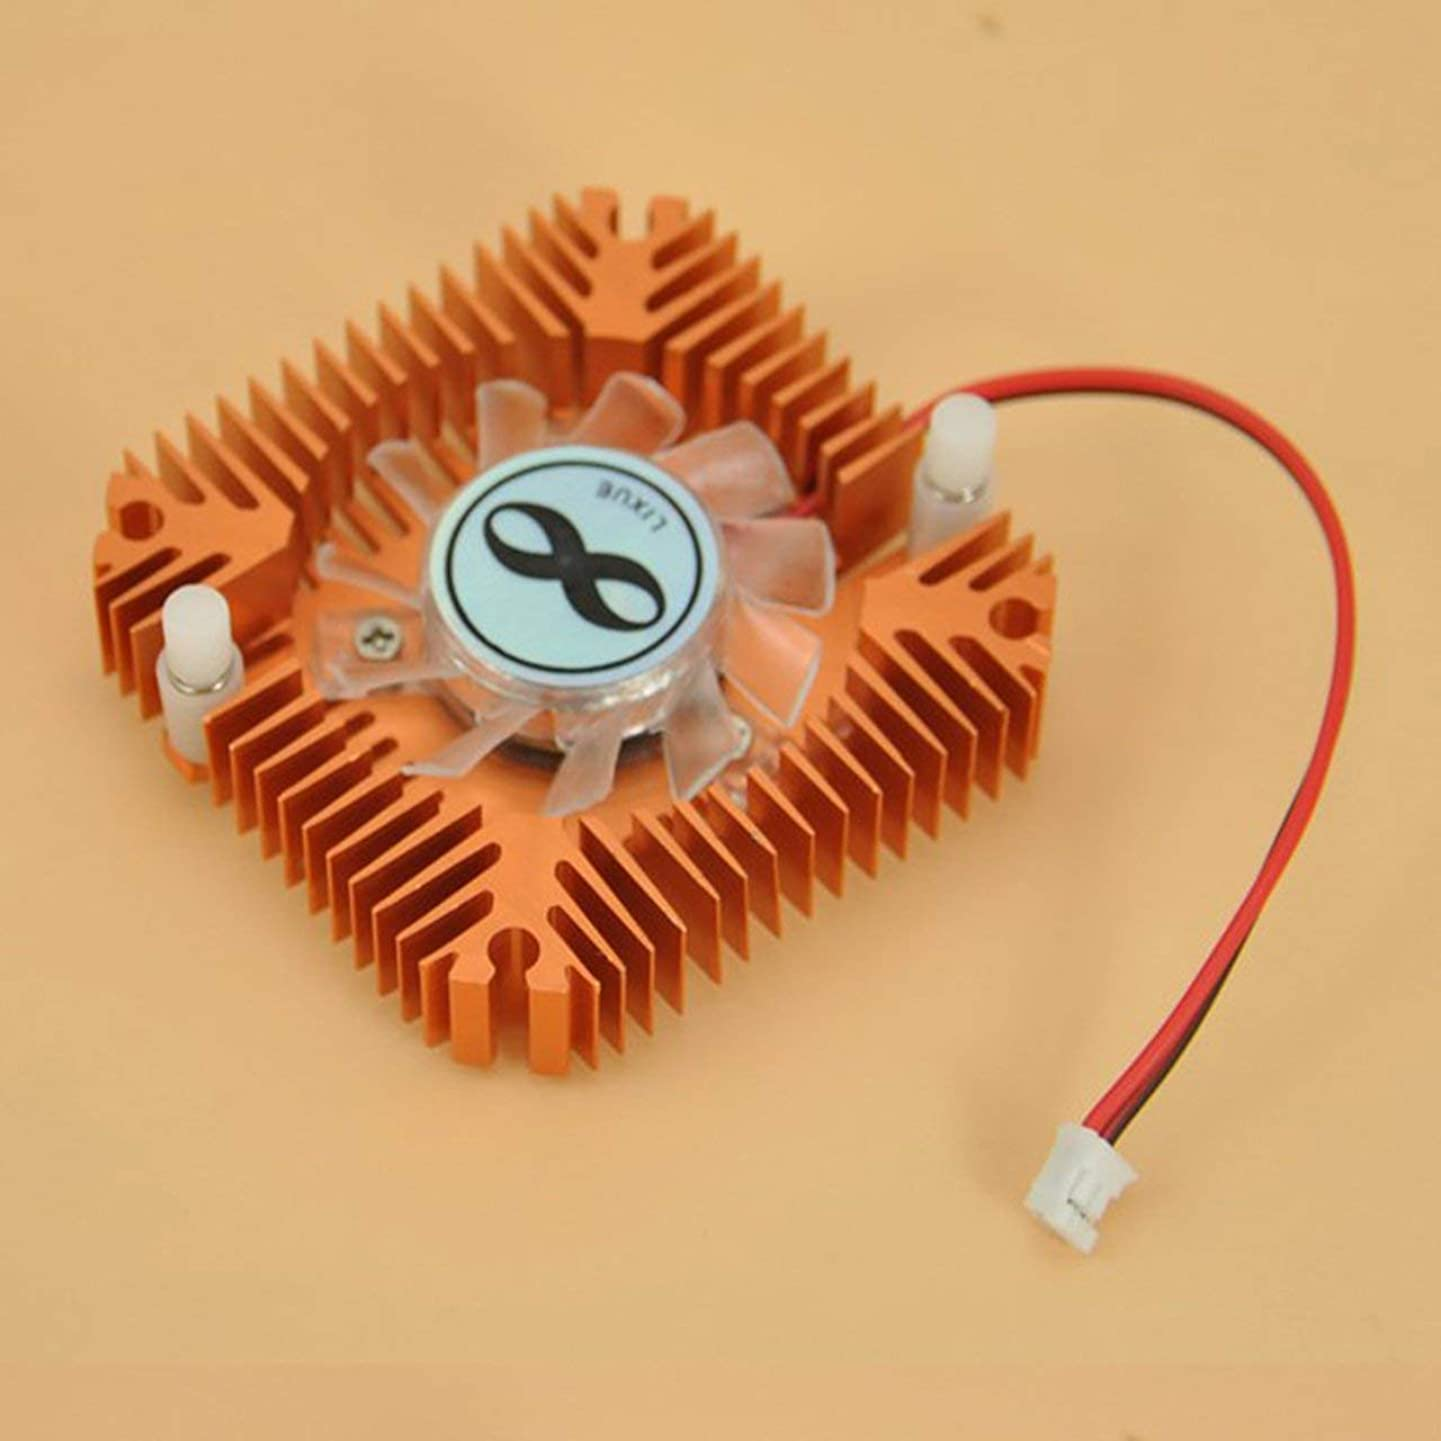 shengerm Fashionable Design Durable Metal Material Cooling Fan Heatsink Cooler for CPU VGA Video Card for PC Computer